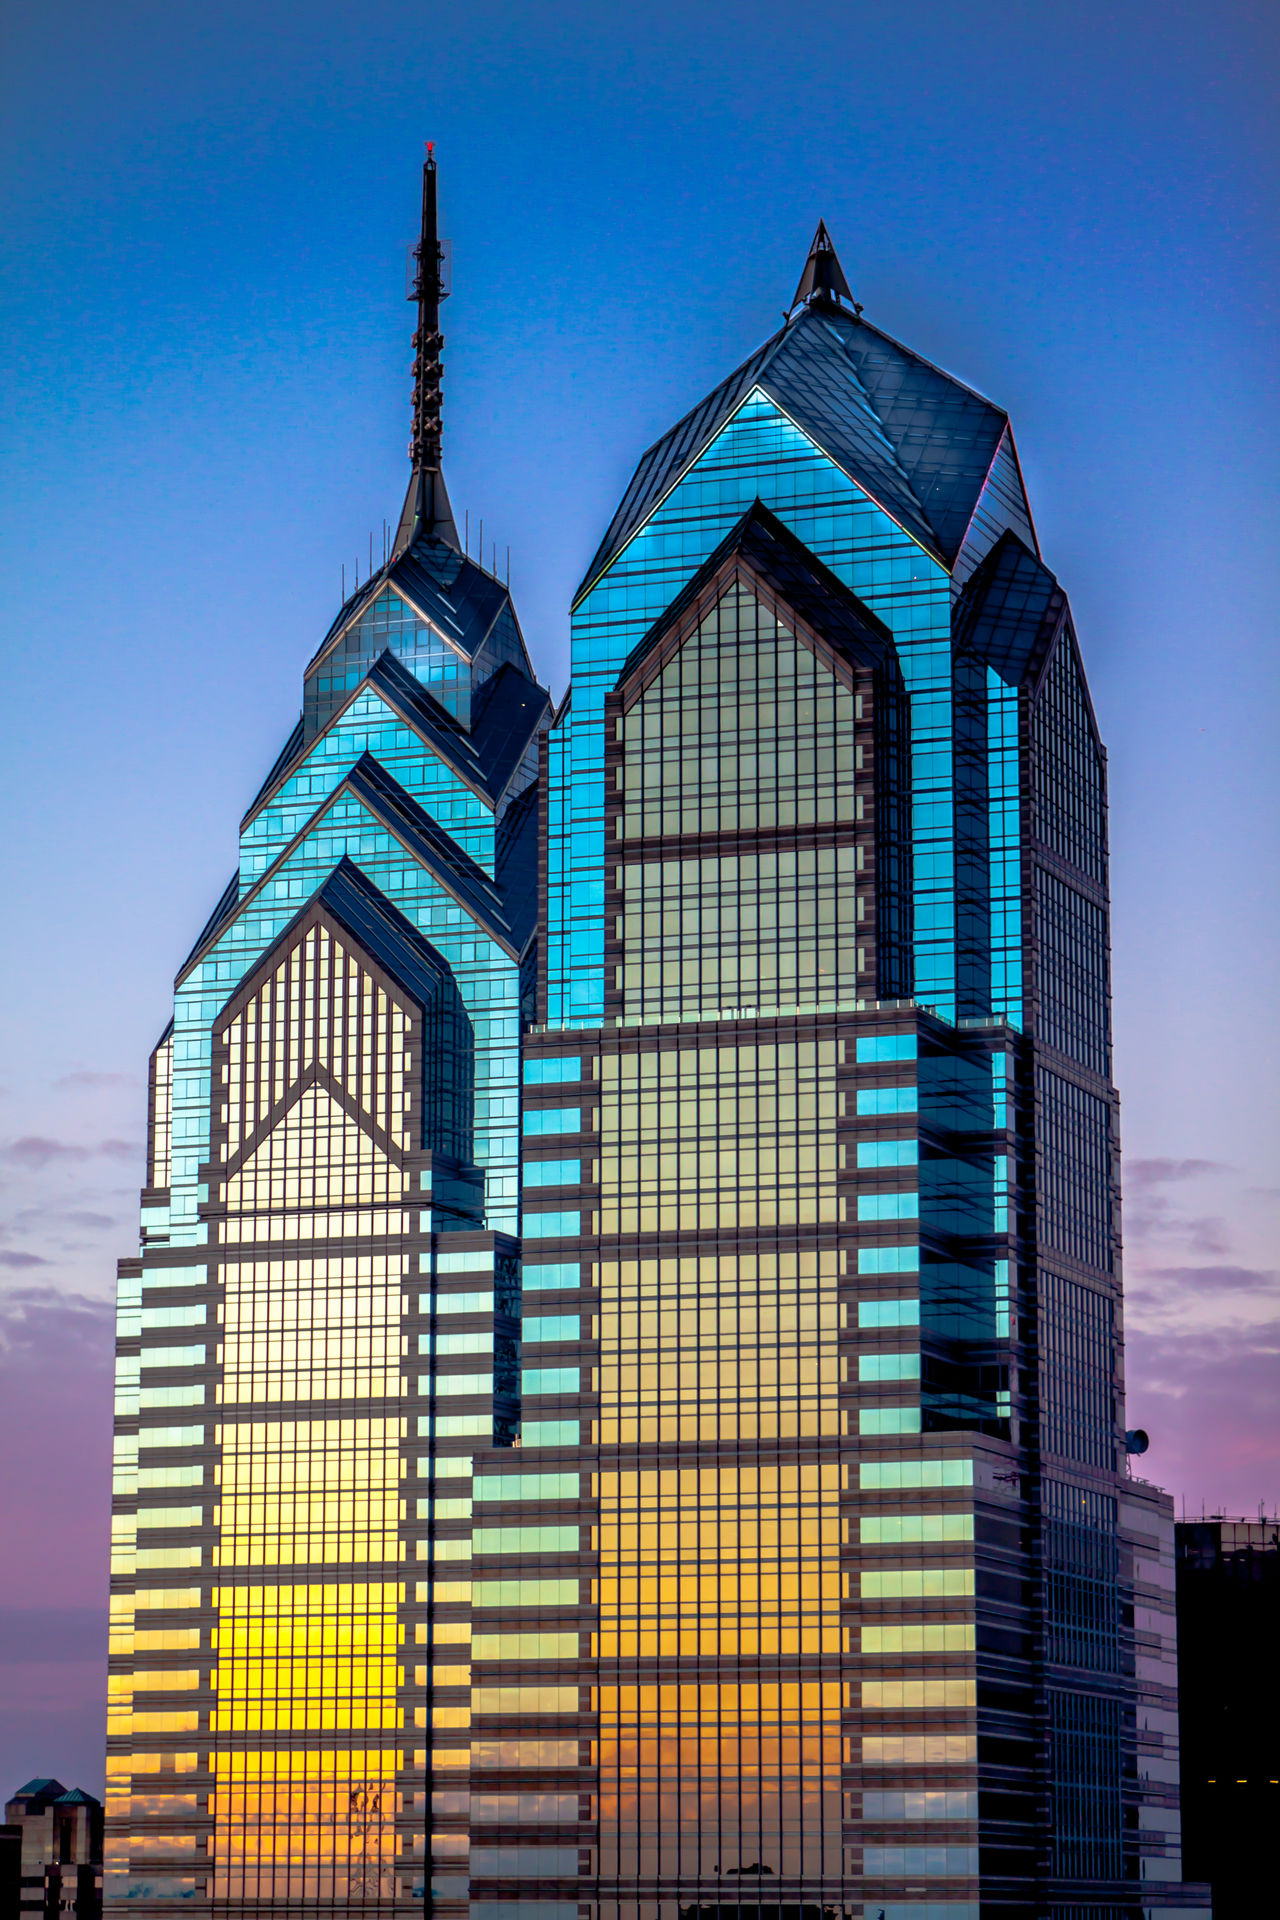 Liberity Towers in Philadelphia, Pennsylvania Architecture Architecture Building Building Exterior Built Structure City Downtown East Coat Façade High Rise Liberty Towers New York Pennsylvania Philadelphia Philadelphia Downtown Religion Residential Structure Skyscraper Sun Tower The Architect - 2016 EyeEm Awards